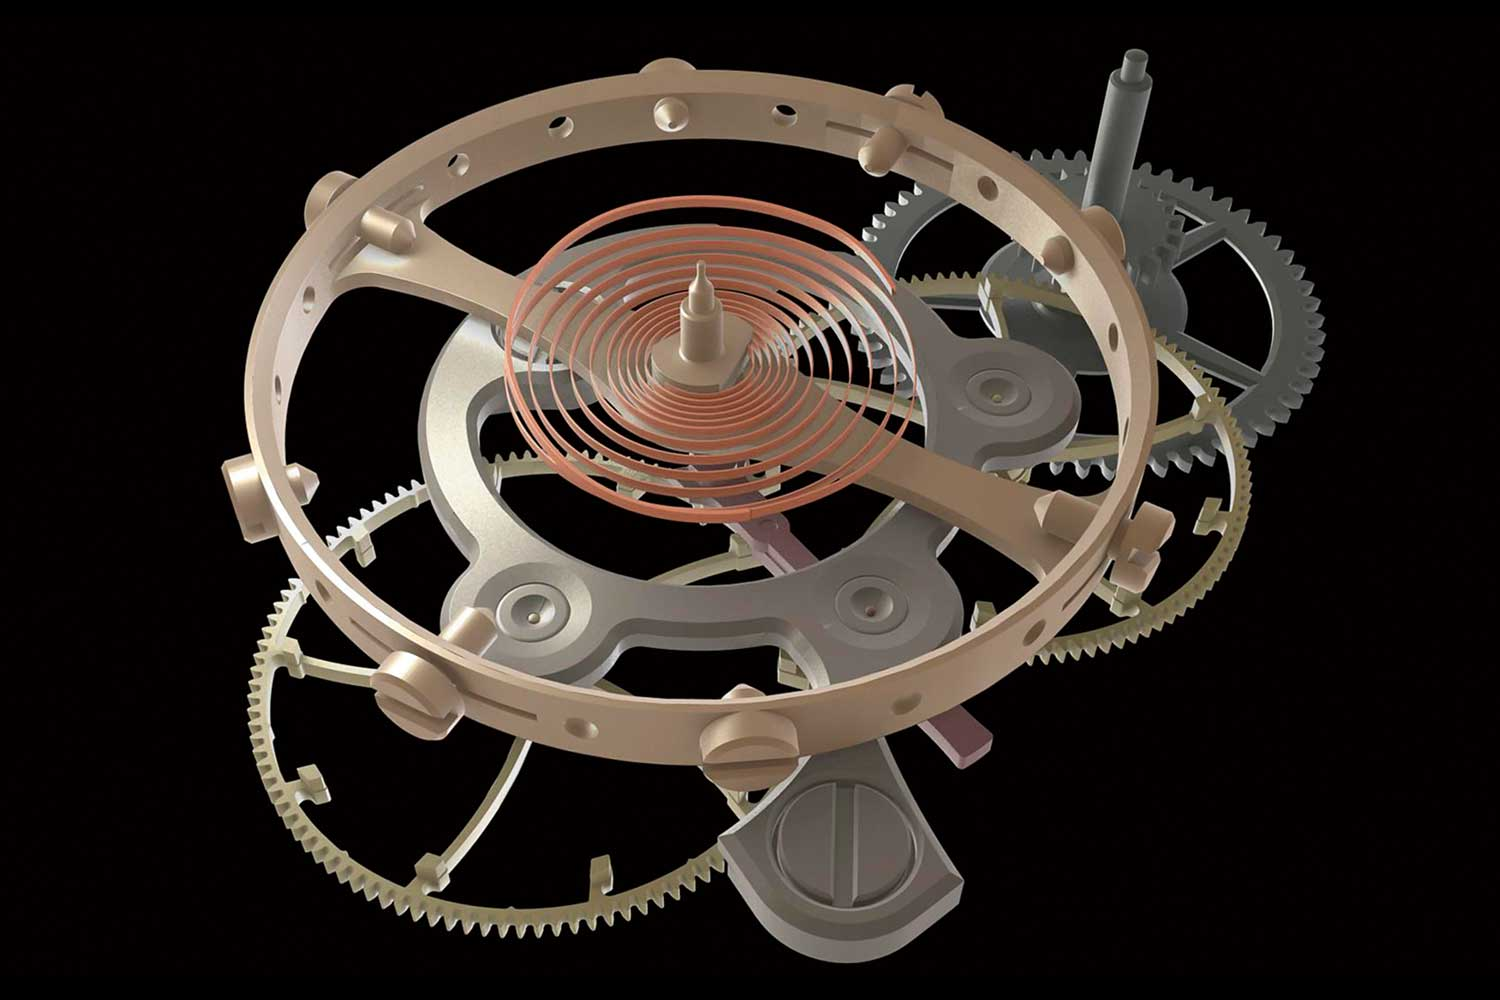 Schematics of LAURENT FERRIER's escapement.